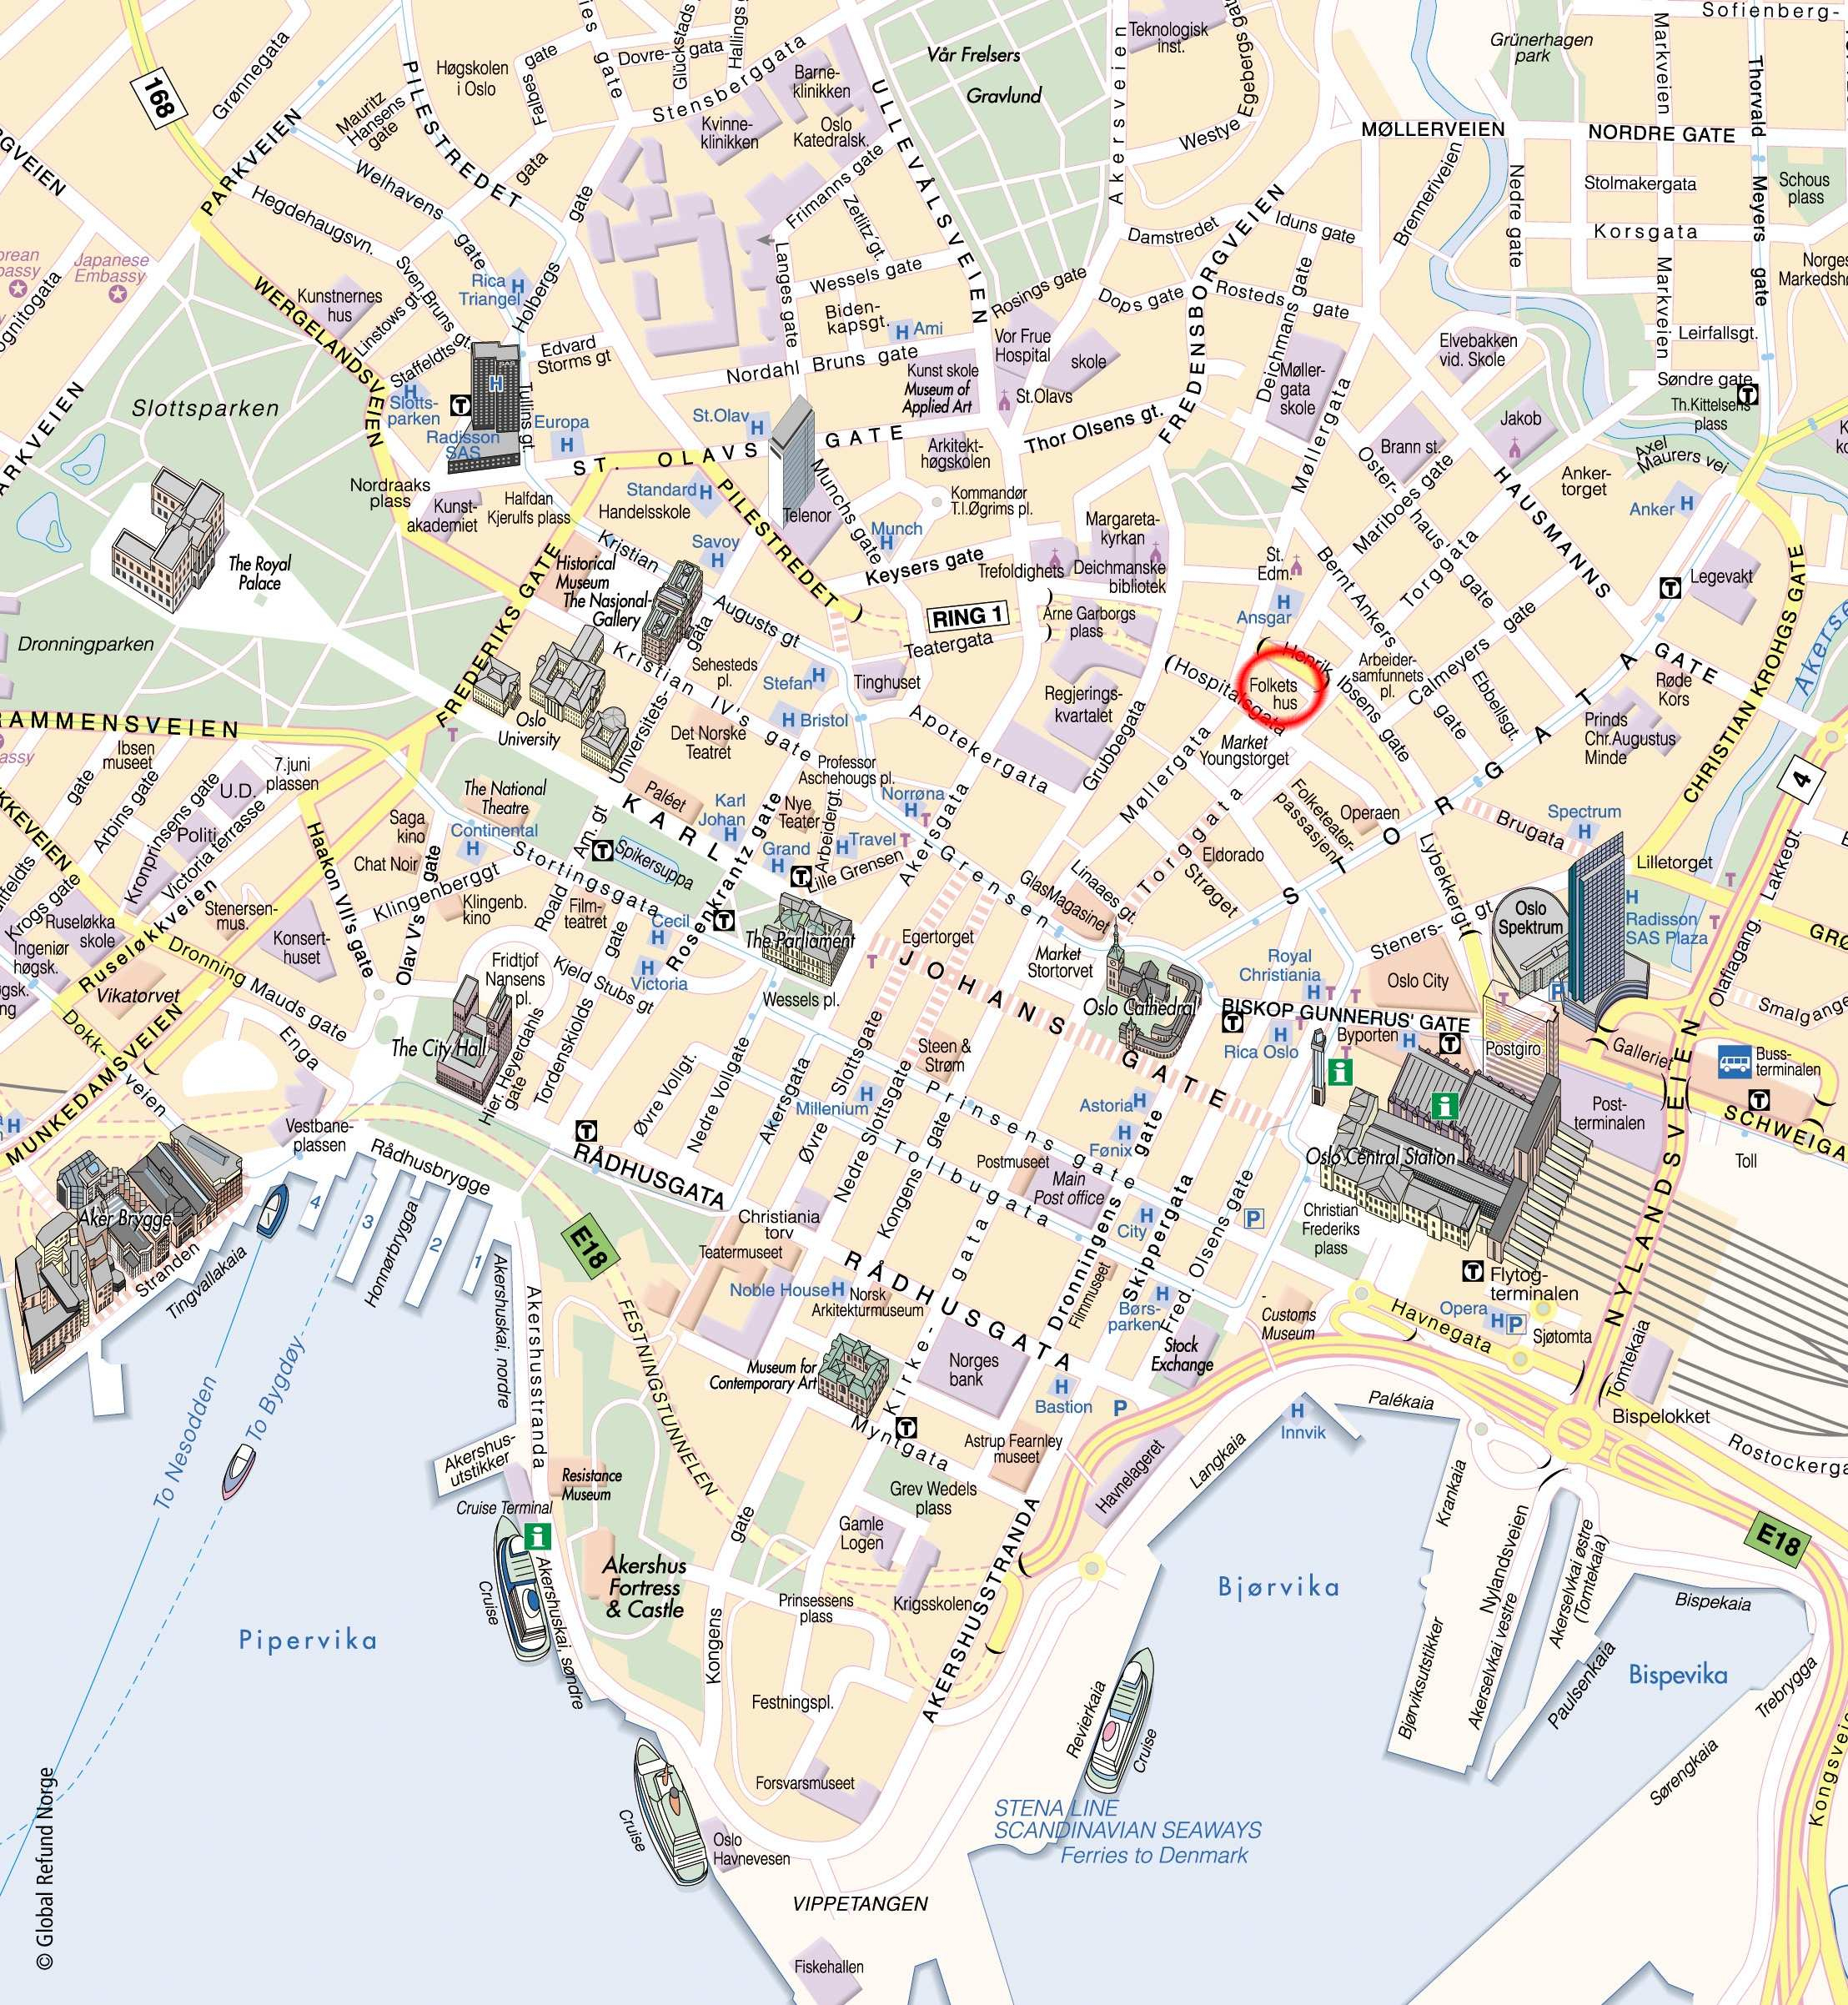 Large Oslo Maps For Free Download And Print | High-Resolution And - Printable Map Of Oslo Norway